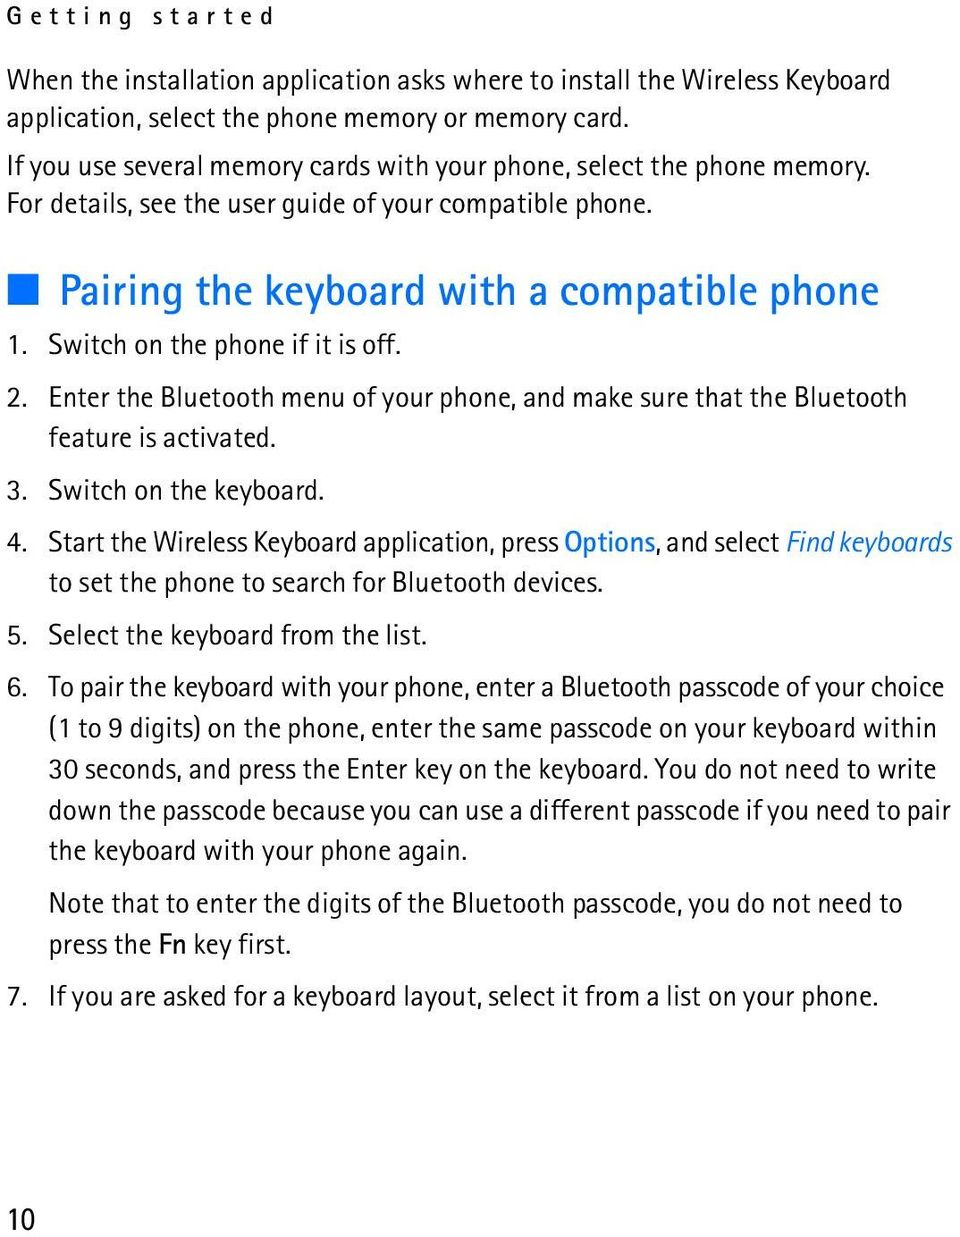 Switch on the phone if it is off. 2. Enter the Bluetooth menu of your phone, and make sure that the Bluetooth feature is activated. 3. Switch on the keyboard. 4.